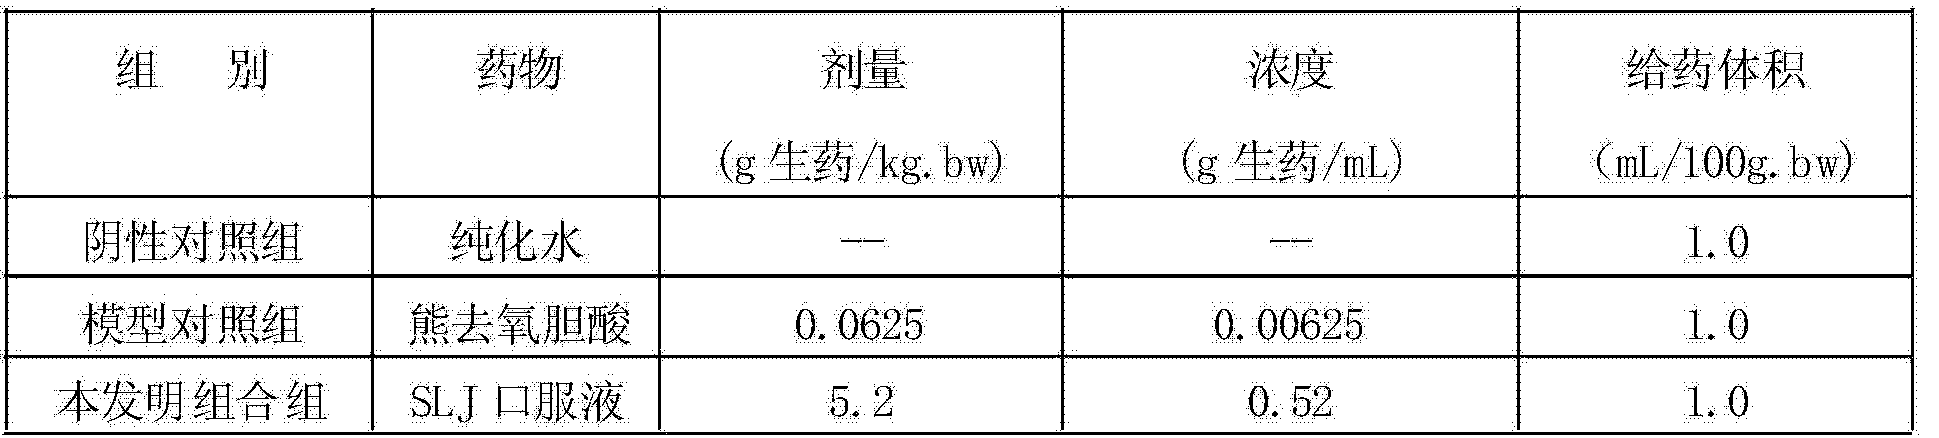 CN104095904A - Medical composition for treating bile related